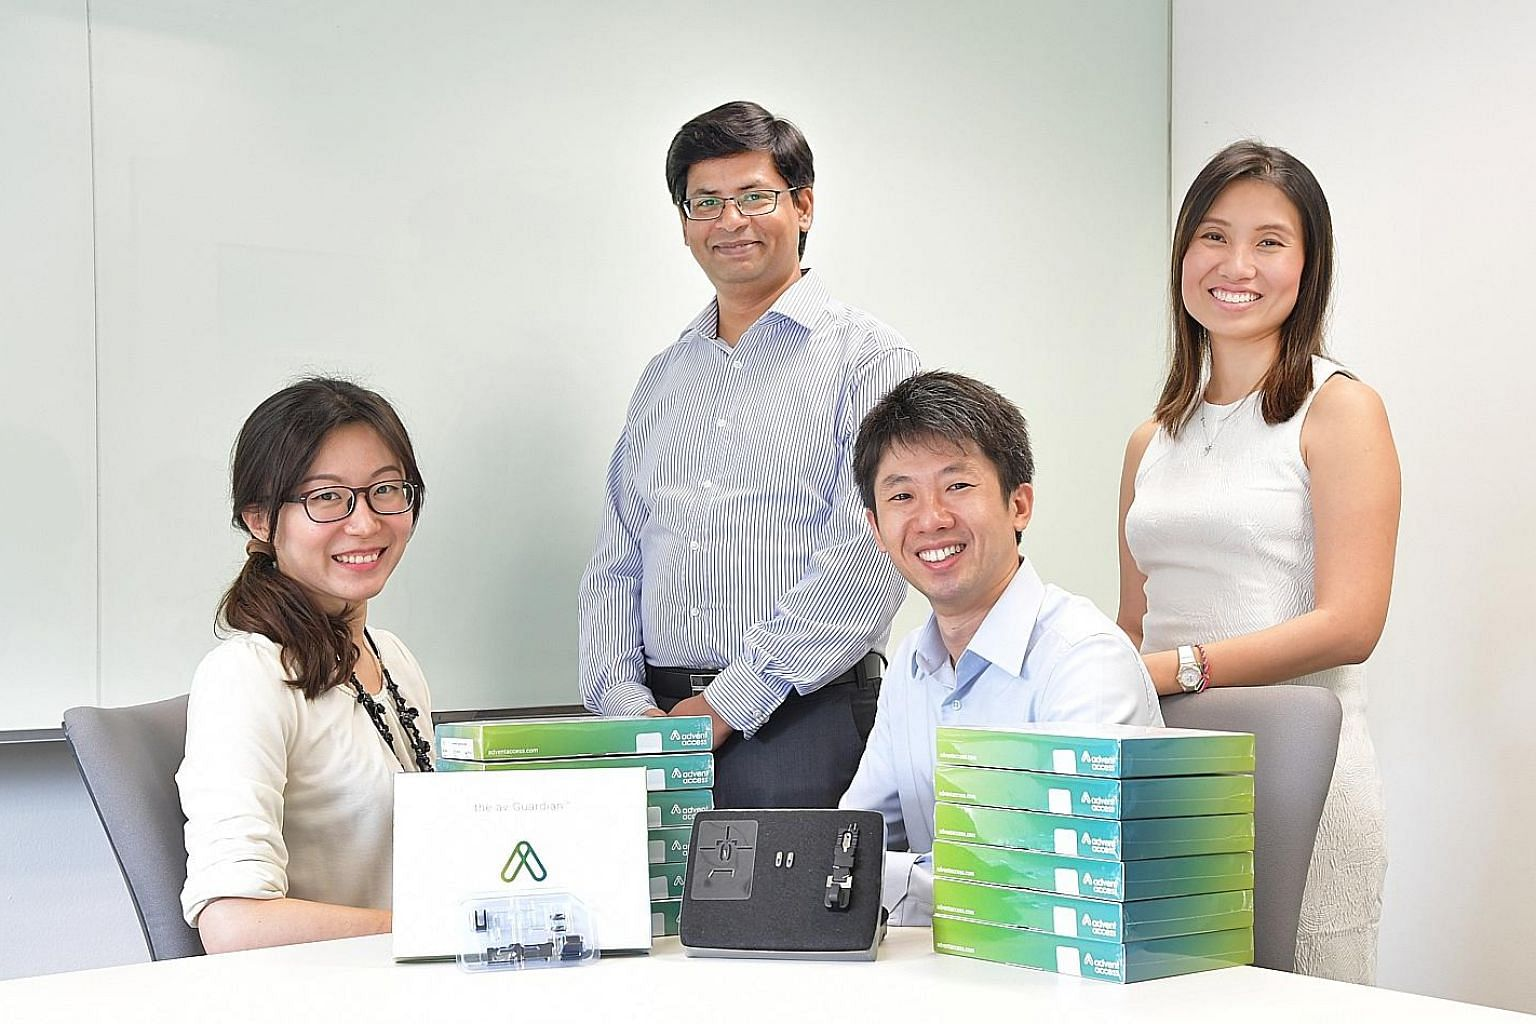 The Advent Access team comprises (from far left) R&D scientist Dr Ye Hongye; senior product engineer Henry Johnson; CEO and founder Peh Ruey Feng; and regulatory specialist Iris Tan.